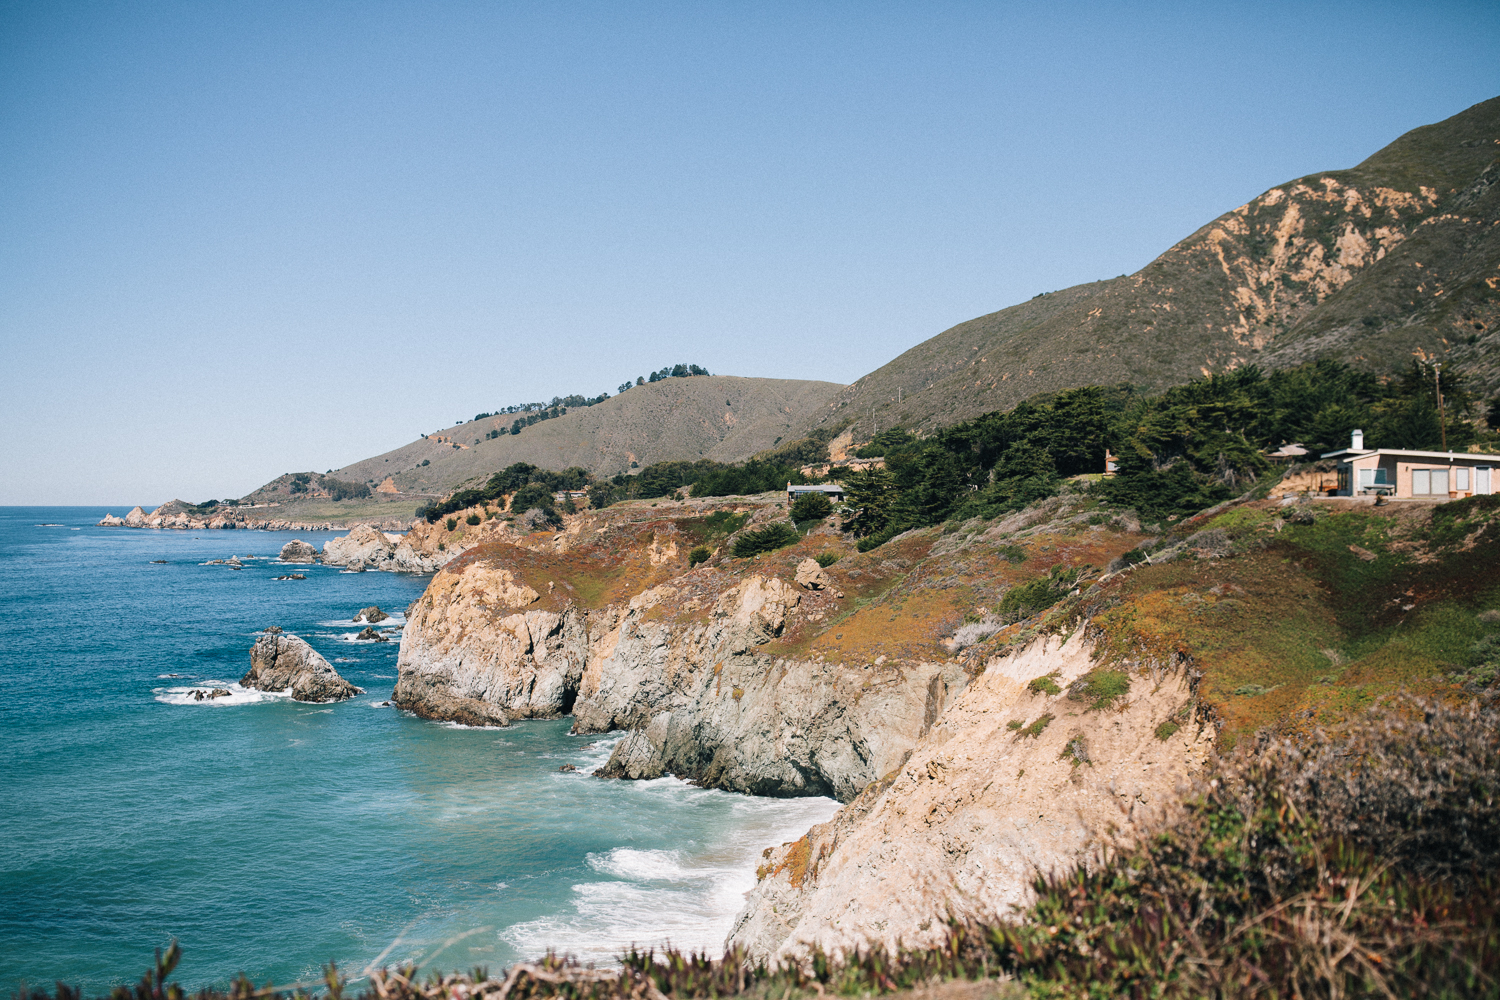 2018_03_ 05MC and Bethany Big Sur Edited For Web 0015.jpg